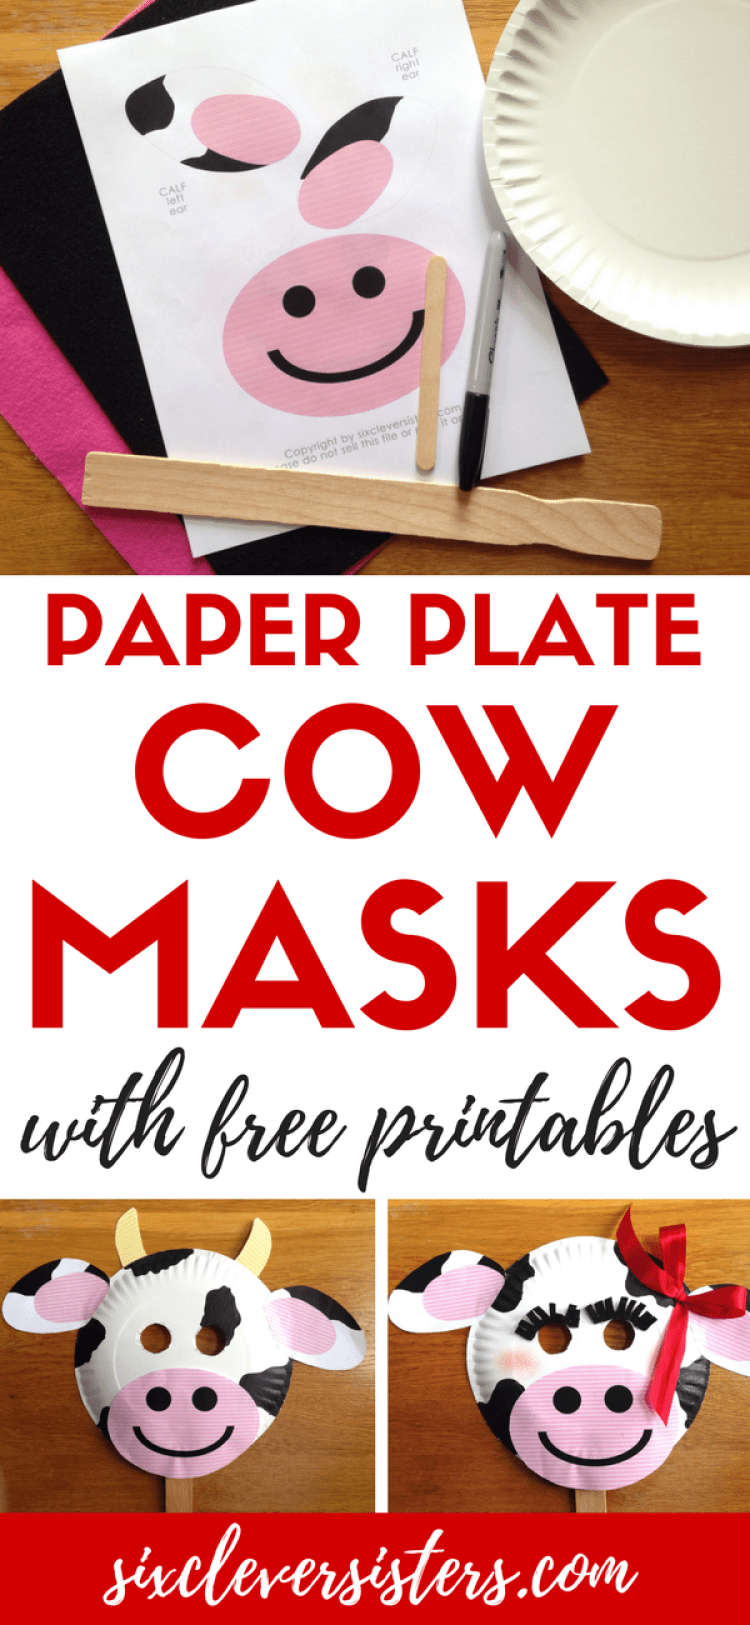 Chick-fil-a Cow Appreciation Day | Cow Appreciation Day Ideas | Chick-fil-A Cow Mask | Chickfila Cow Day | Paper Plate Crafts | Paper Plate Cow | Paper Plate Cow Craft | Cow Mask | Cow Mask for Kids | CFA | Chickfila Cow Appreciation Day Rules | Chickfila Day | Cow Face | Are you ready to #eatmorechikin ? If you're a family that loves Chick-fil-a, you know what Cow Appreciation Day means! And, Six Clever Sisters has easy cow masks ideas for you for the whole family!